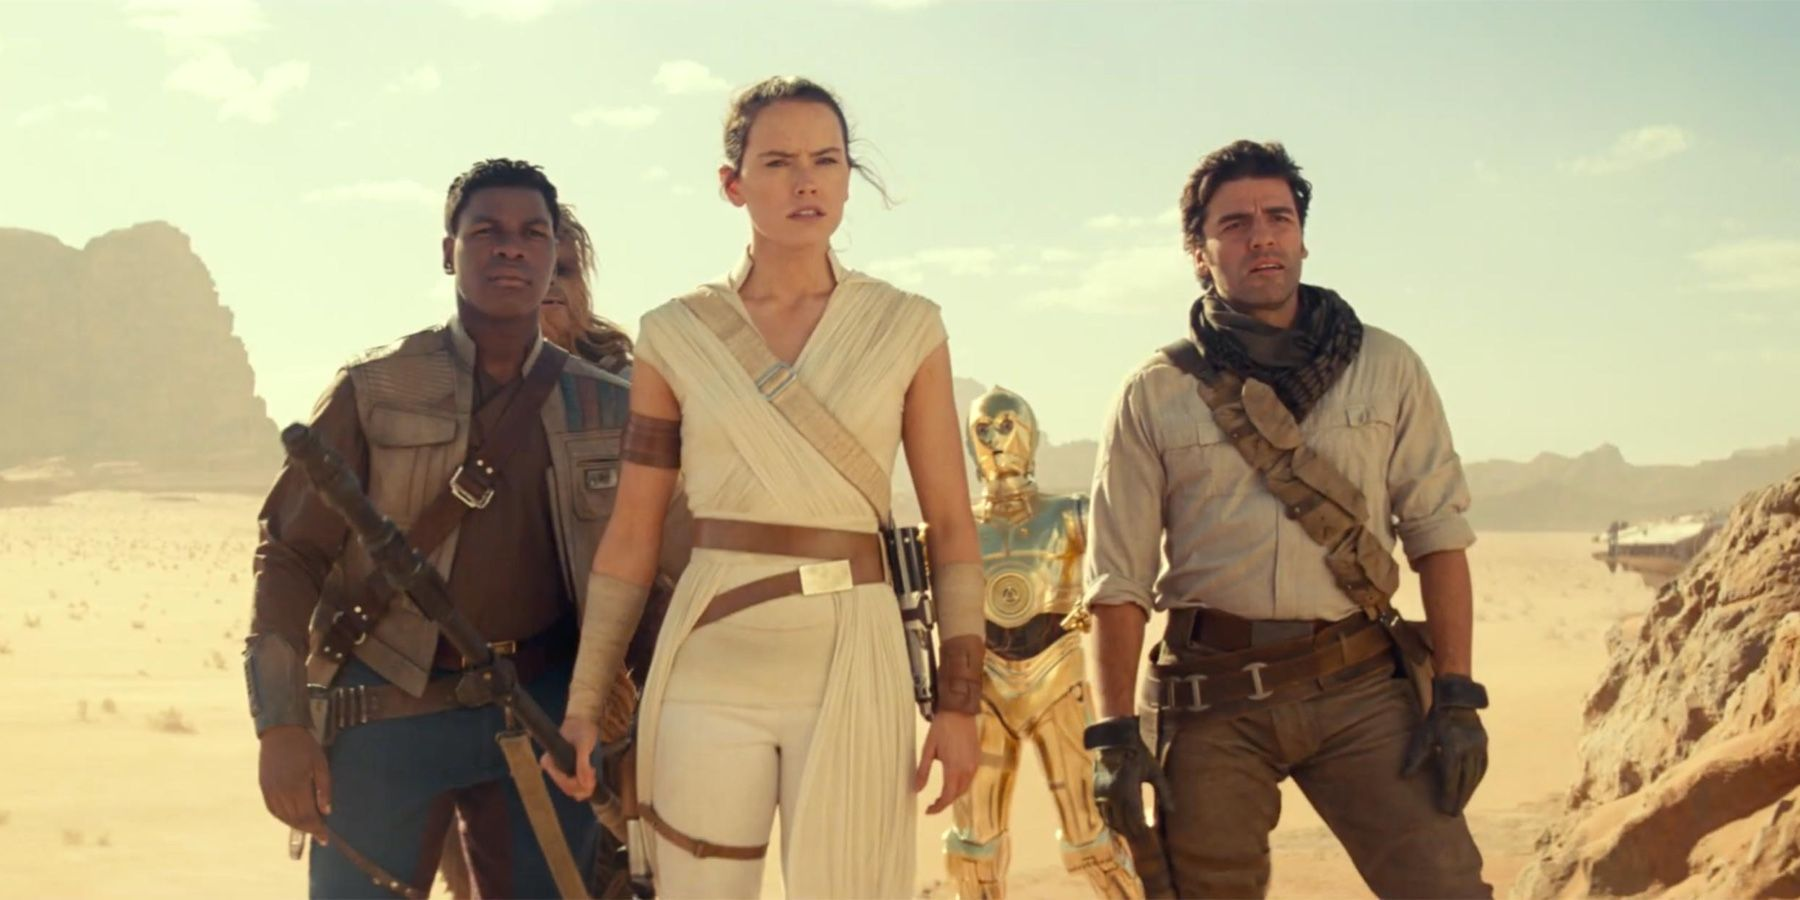 Star Wars 9 Runtime Listed By Theaters - But Is It Real?